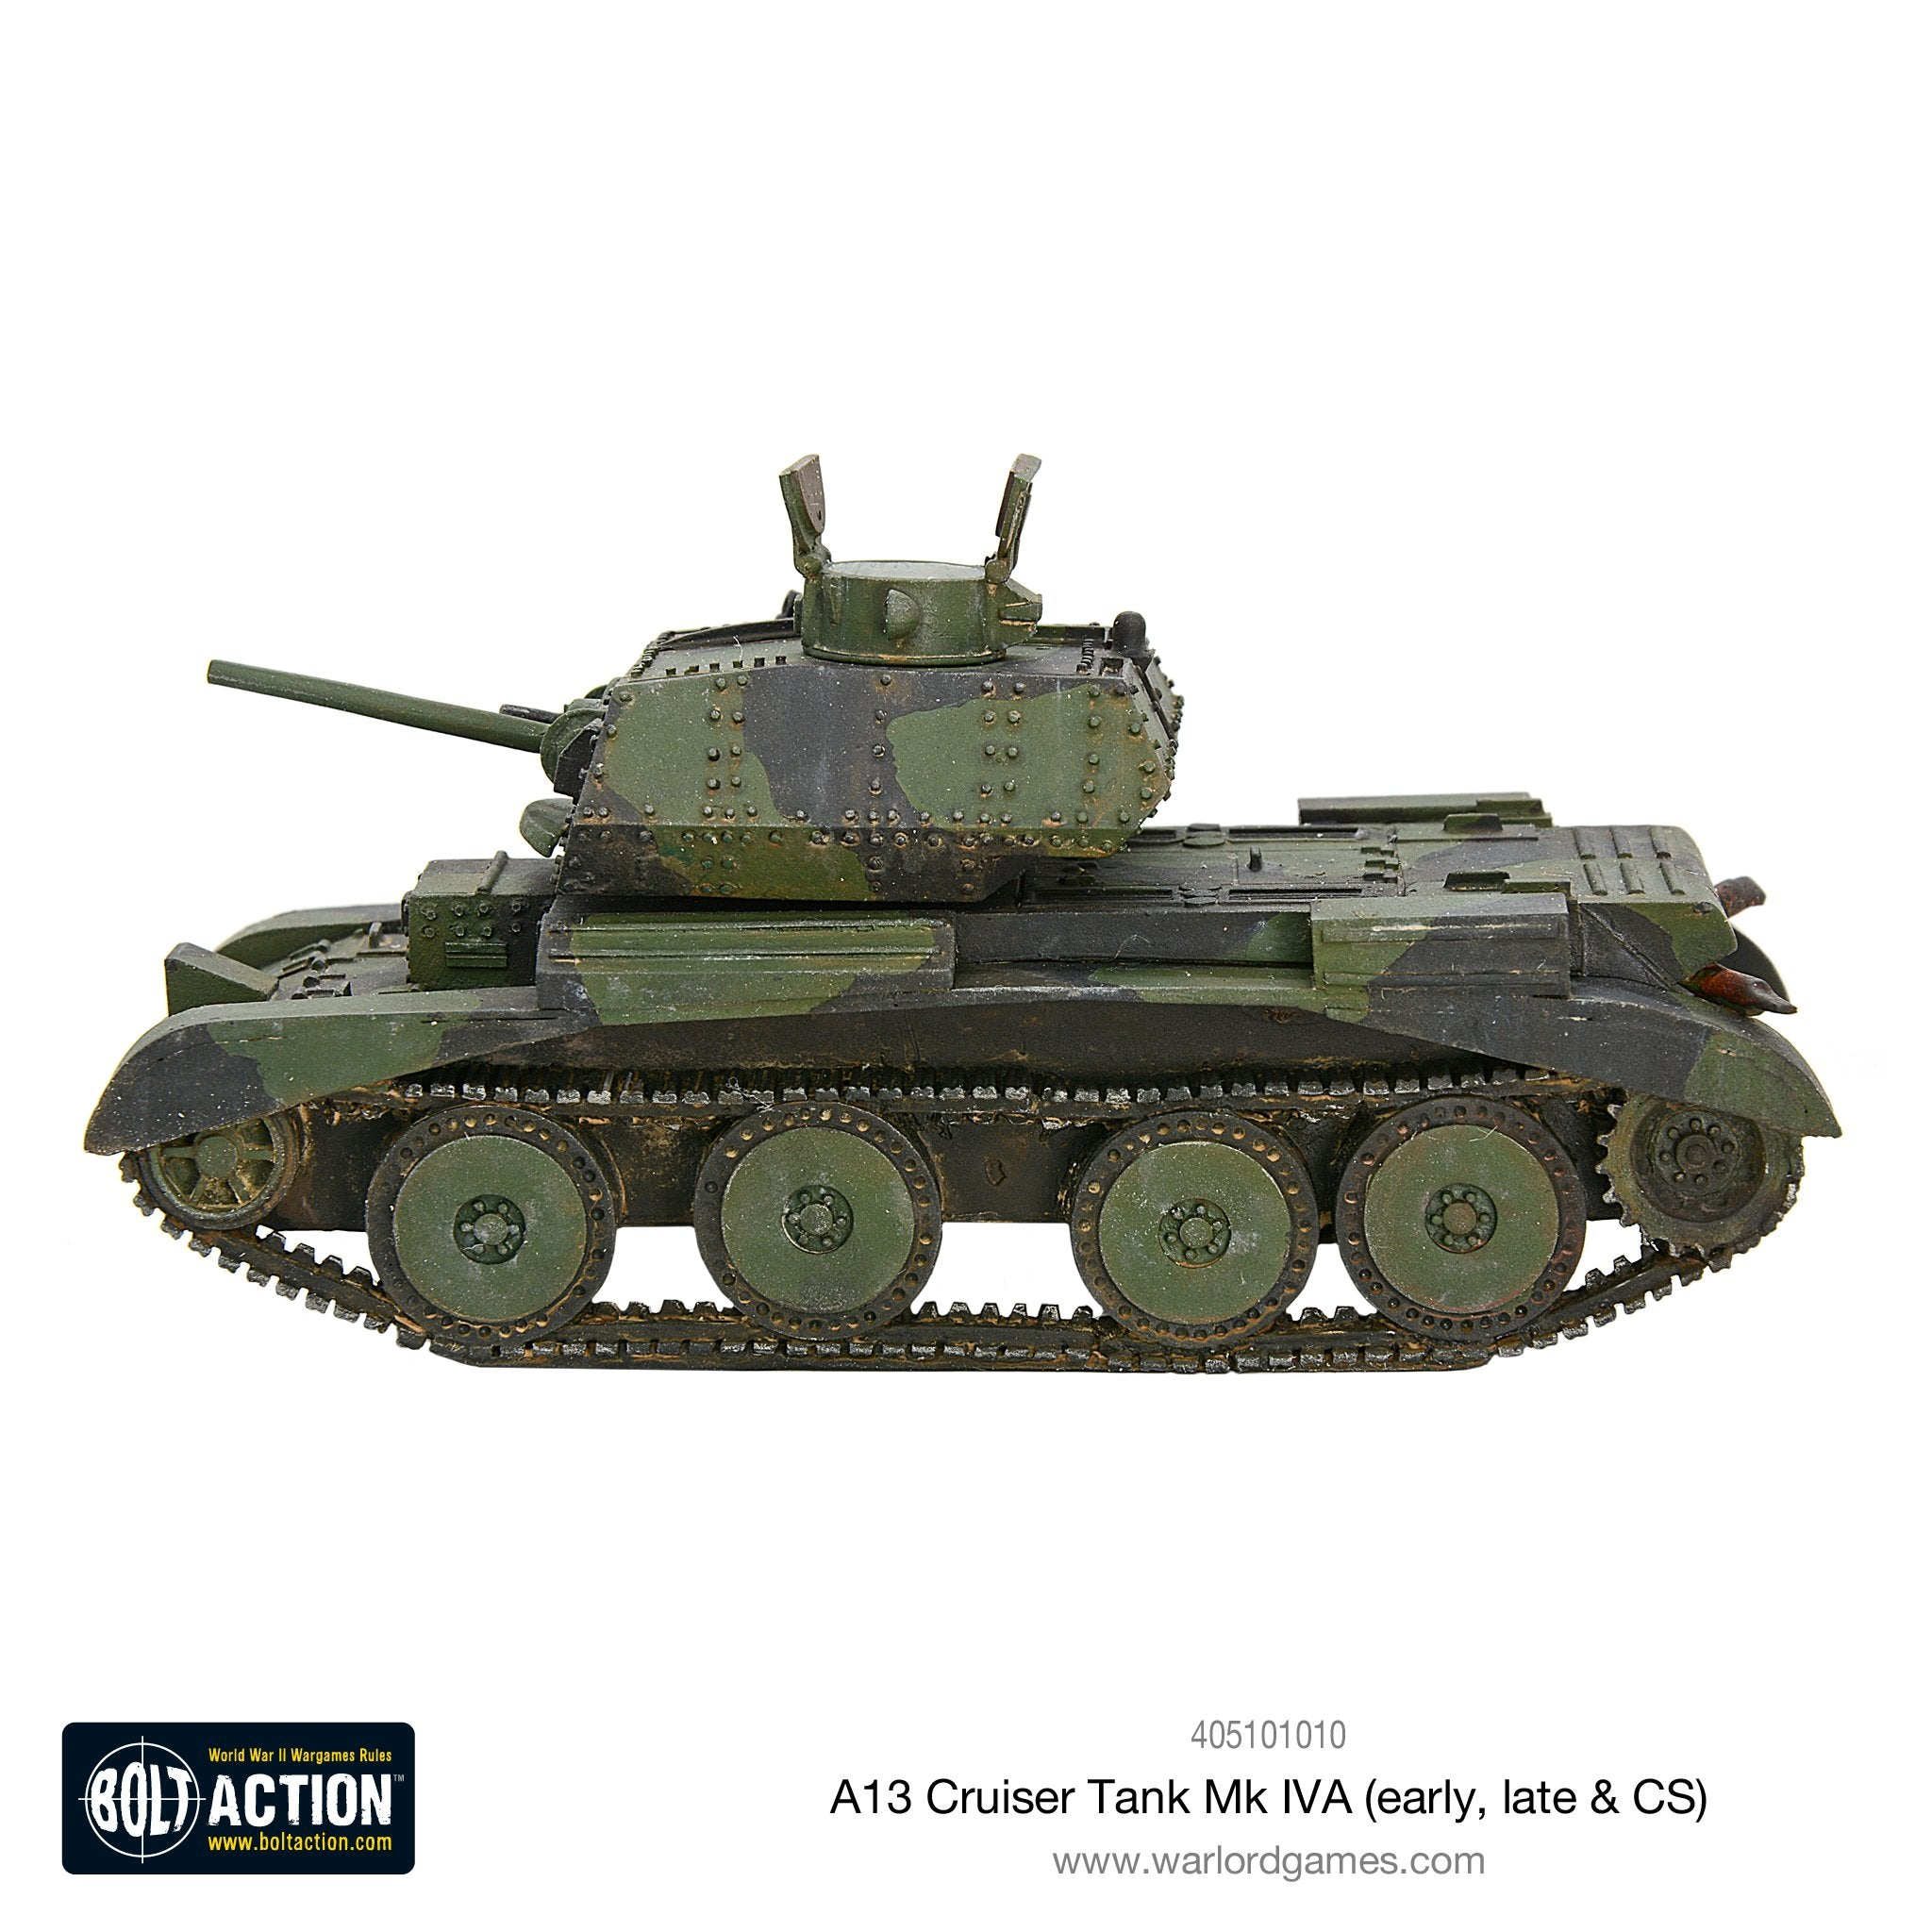 A13 cruiser tank Mk IVA (early, late & CS)